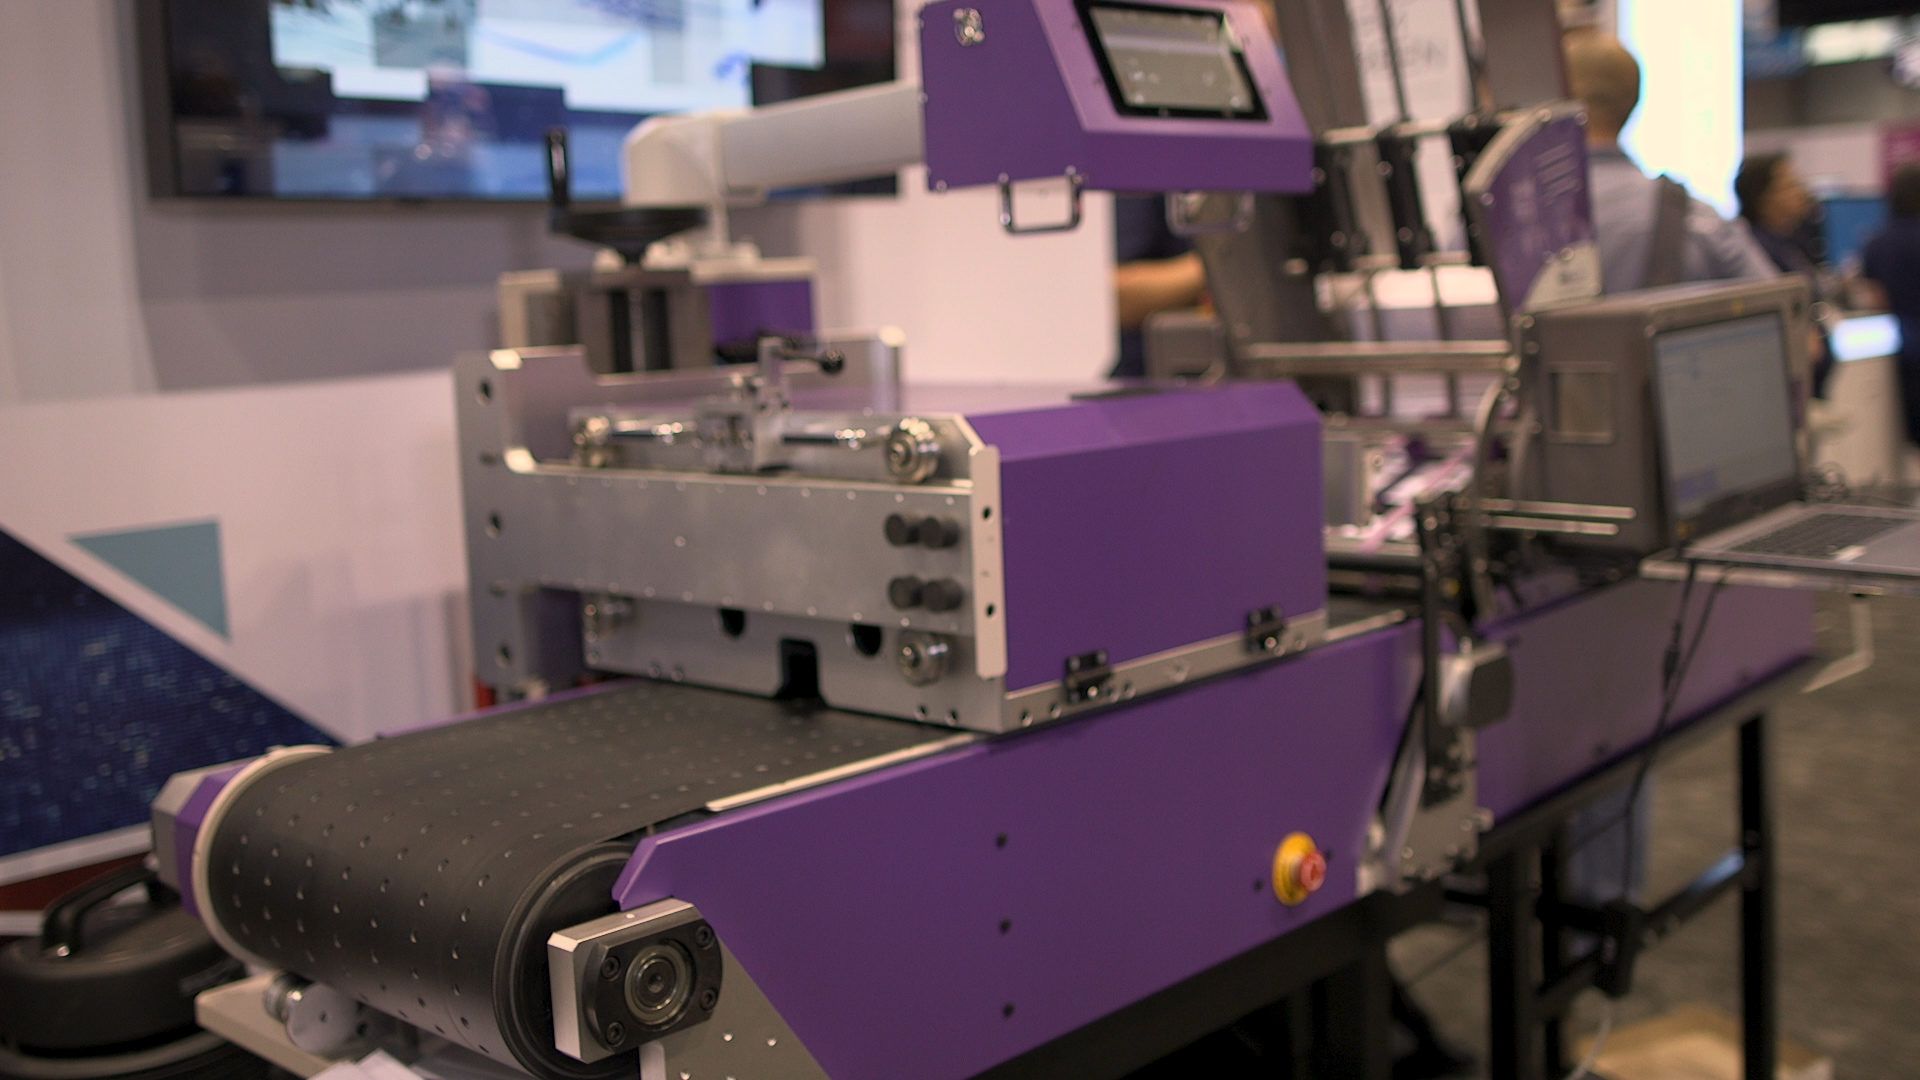 Video preview: Xanté launches their new full color specialty printing solution based on HP FI-1000